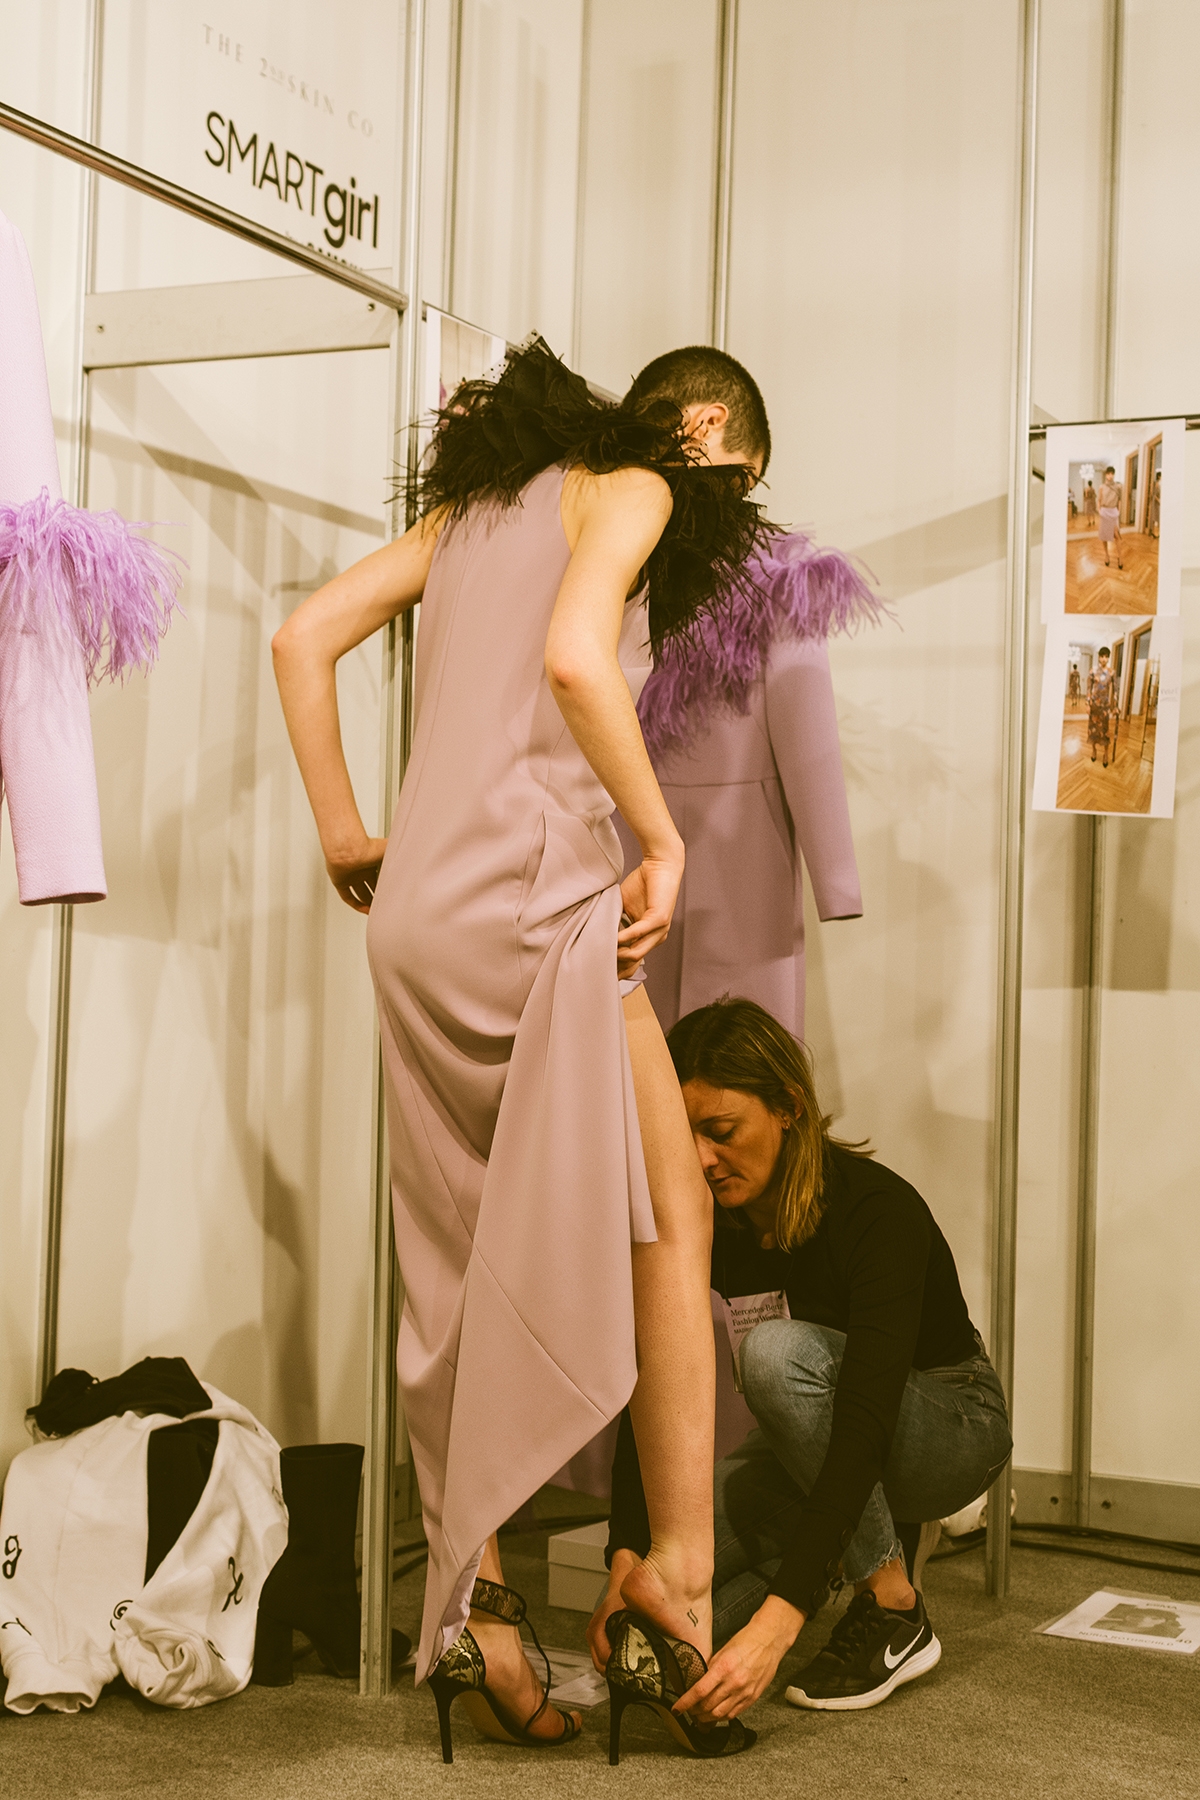 THE 2ND SKIN CO./backstage-lucky27c.jpg